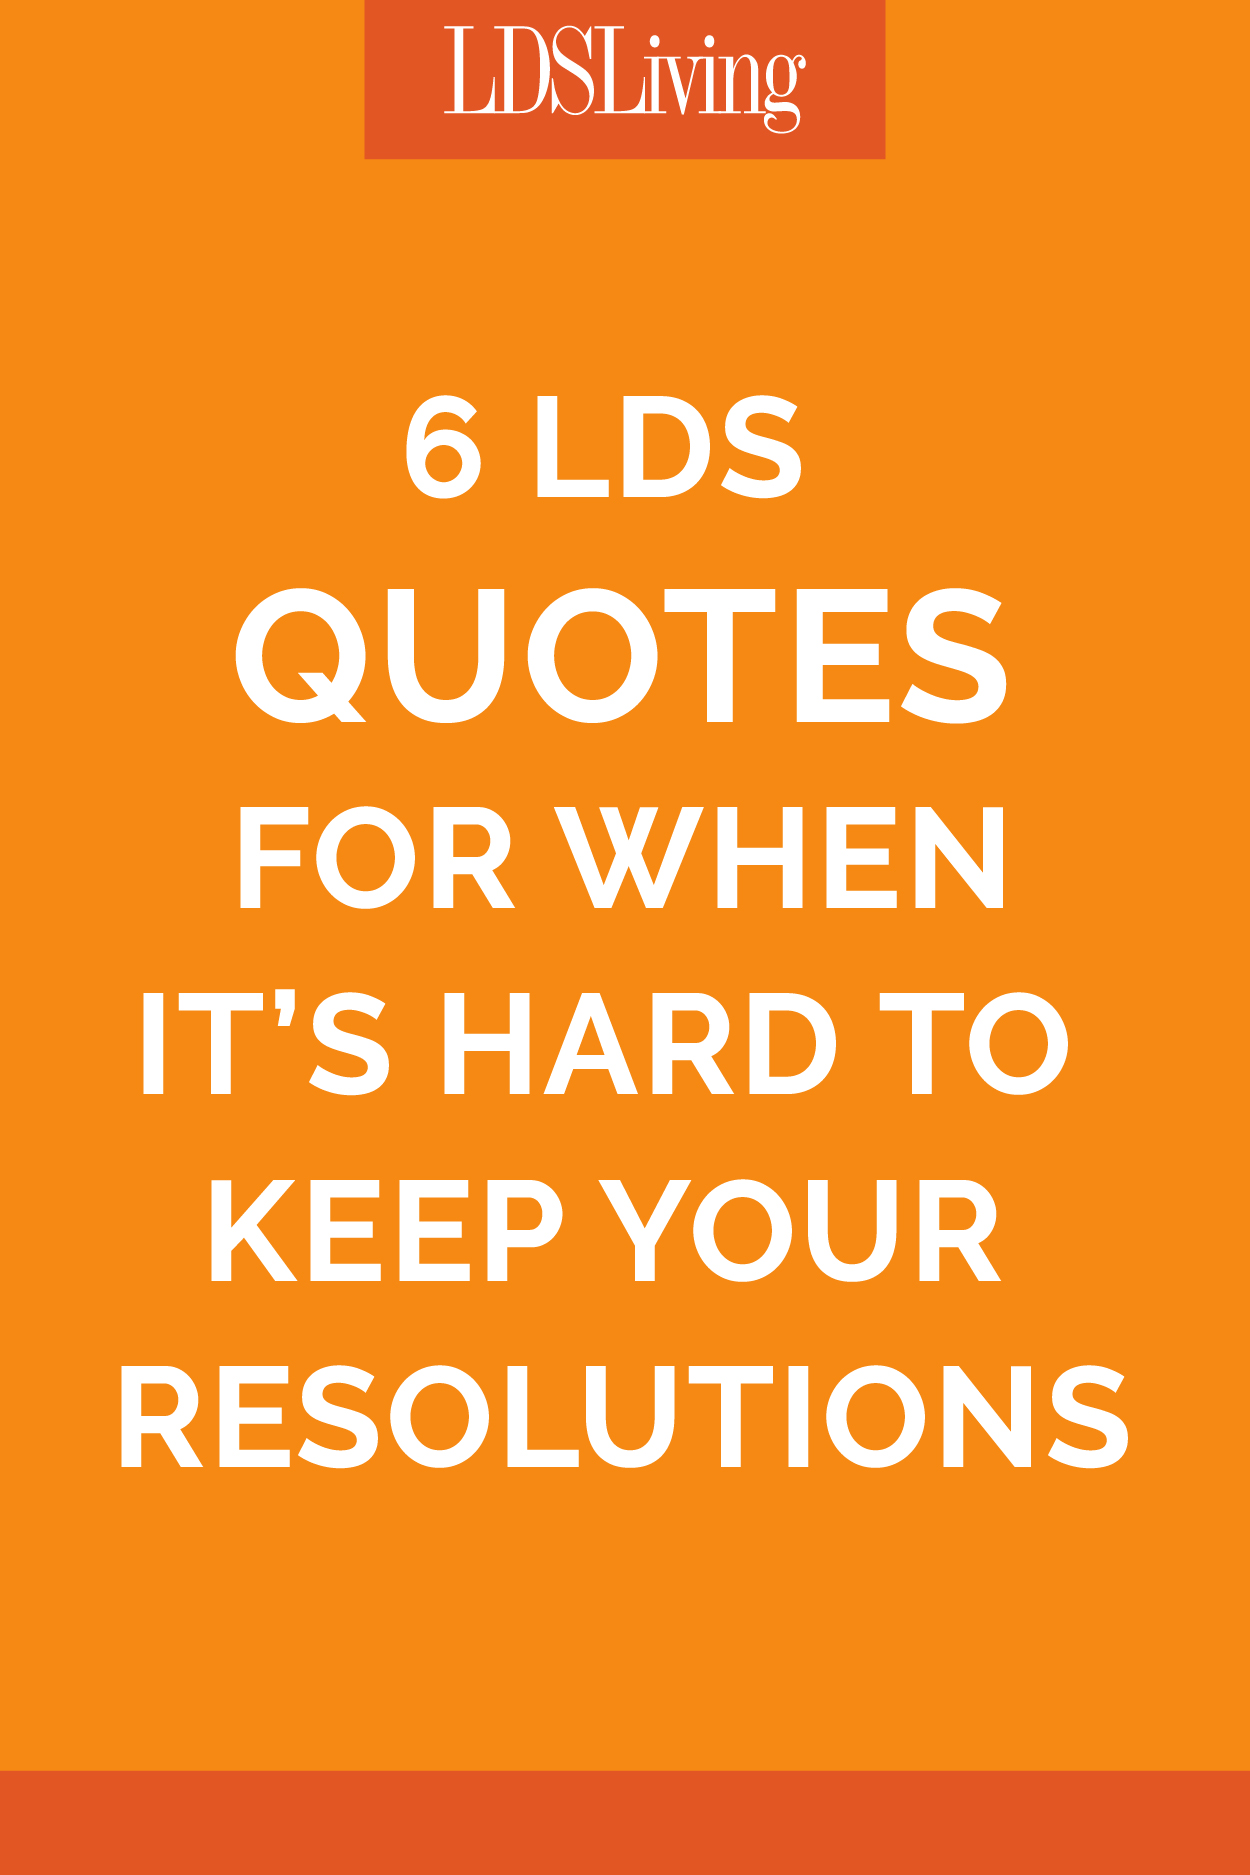 7 Quotes for When it's Hard to Keep Your Resolutions